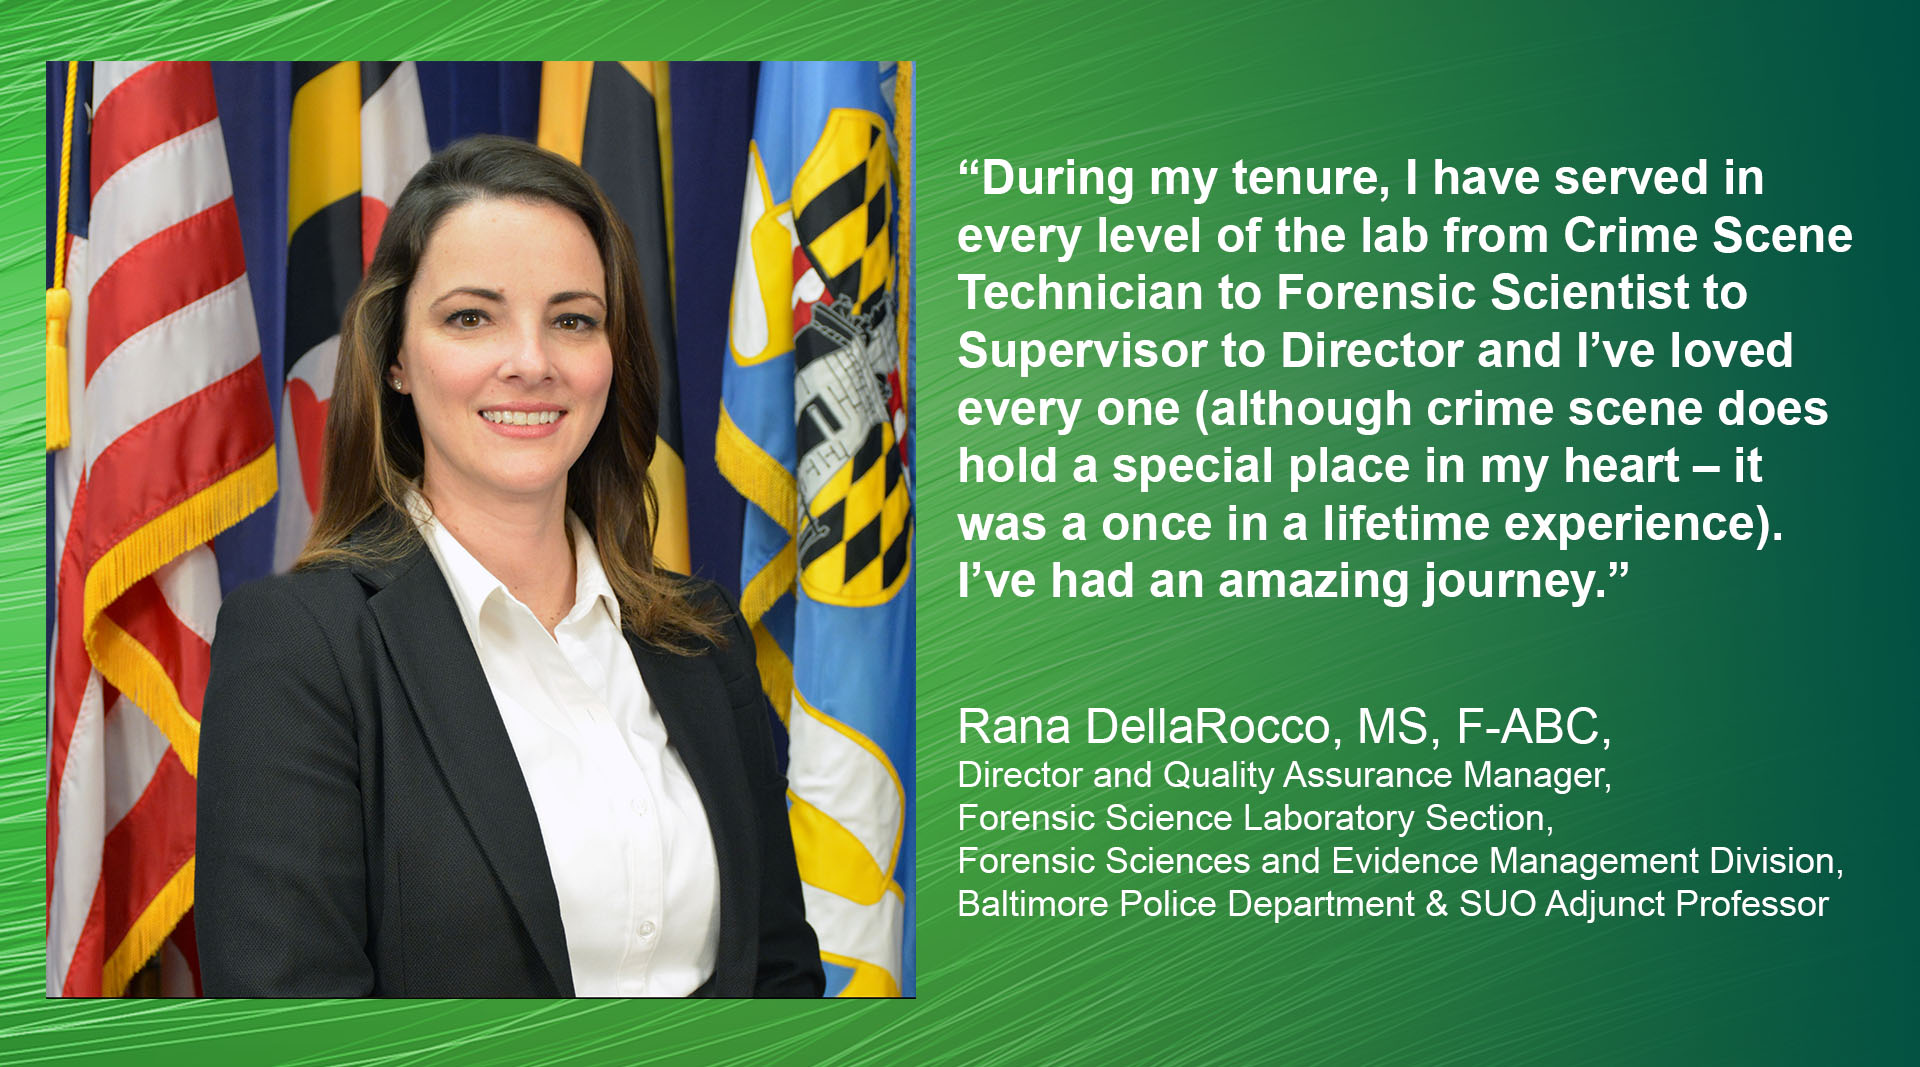 Photo of Rana DellaRocco with quote